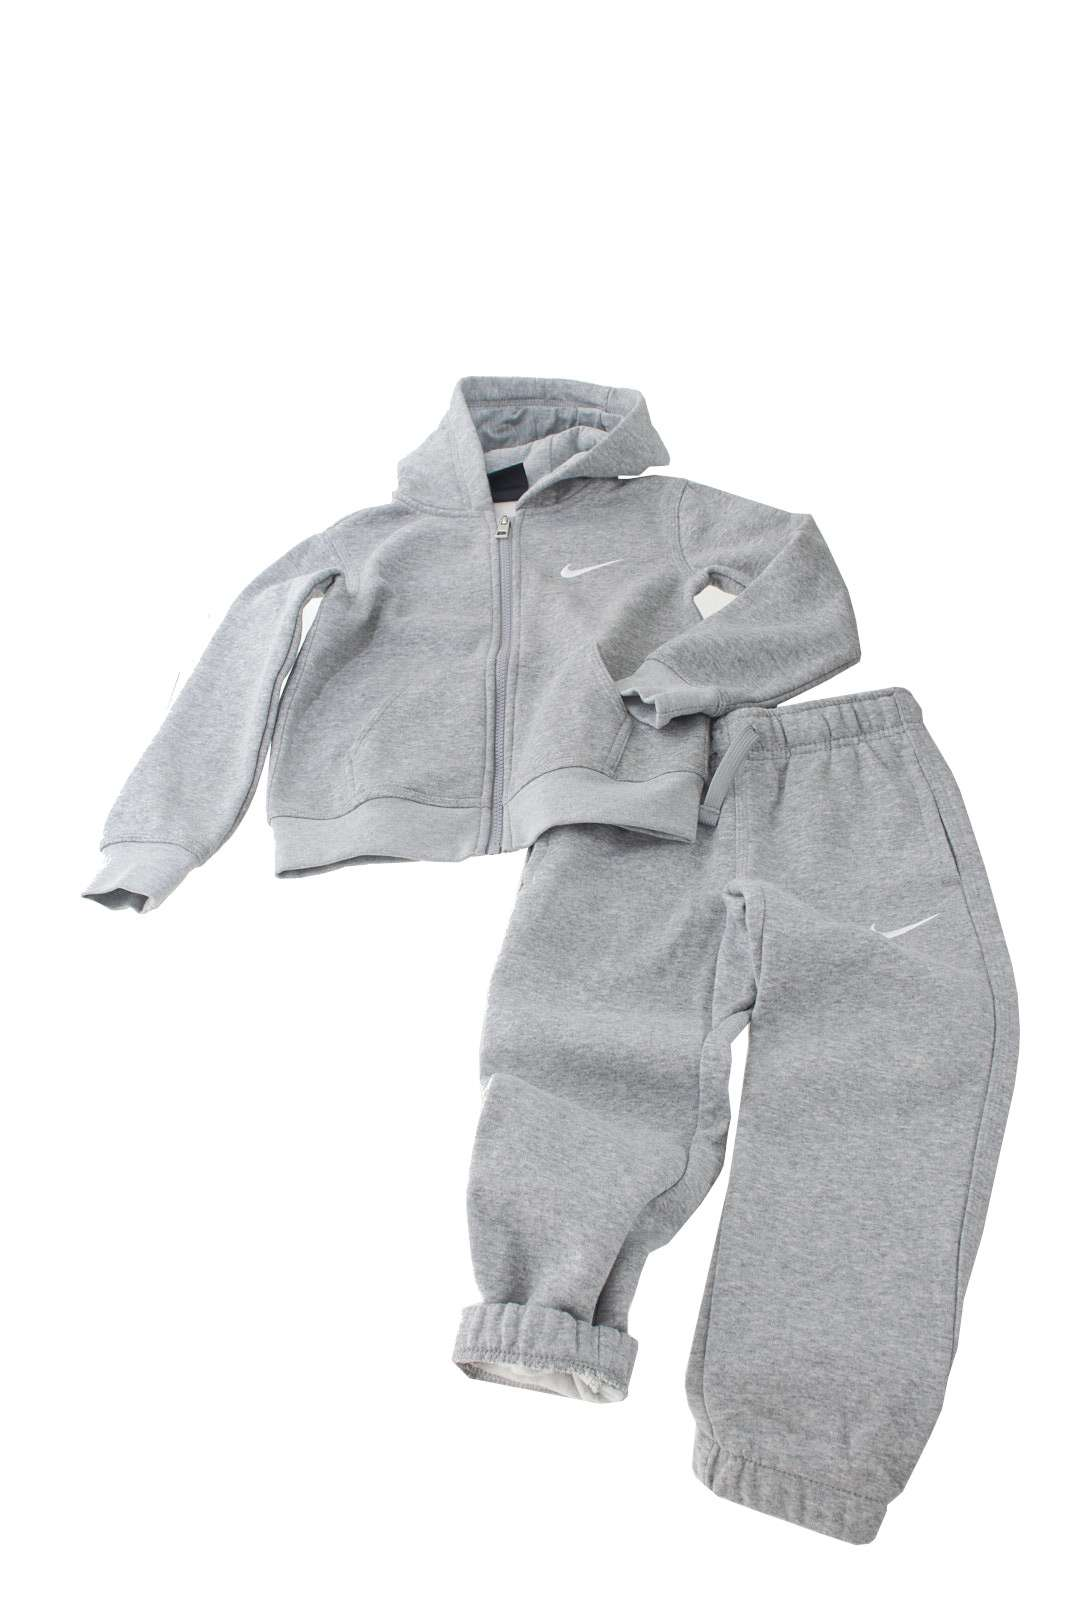 https://www.parmax.com/media/catalog/product/a/i/AI-outlet_parmax-felpa-bambino-Nike-86828-A.jpg